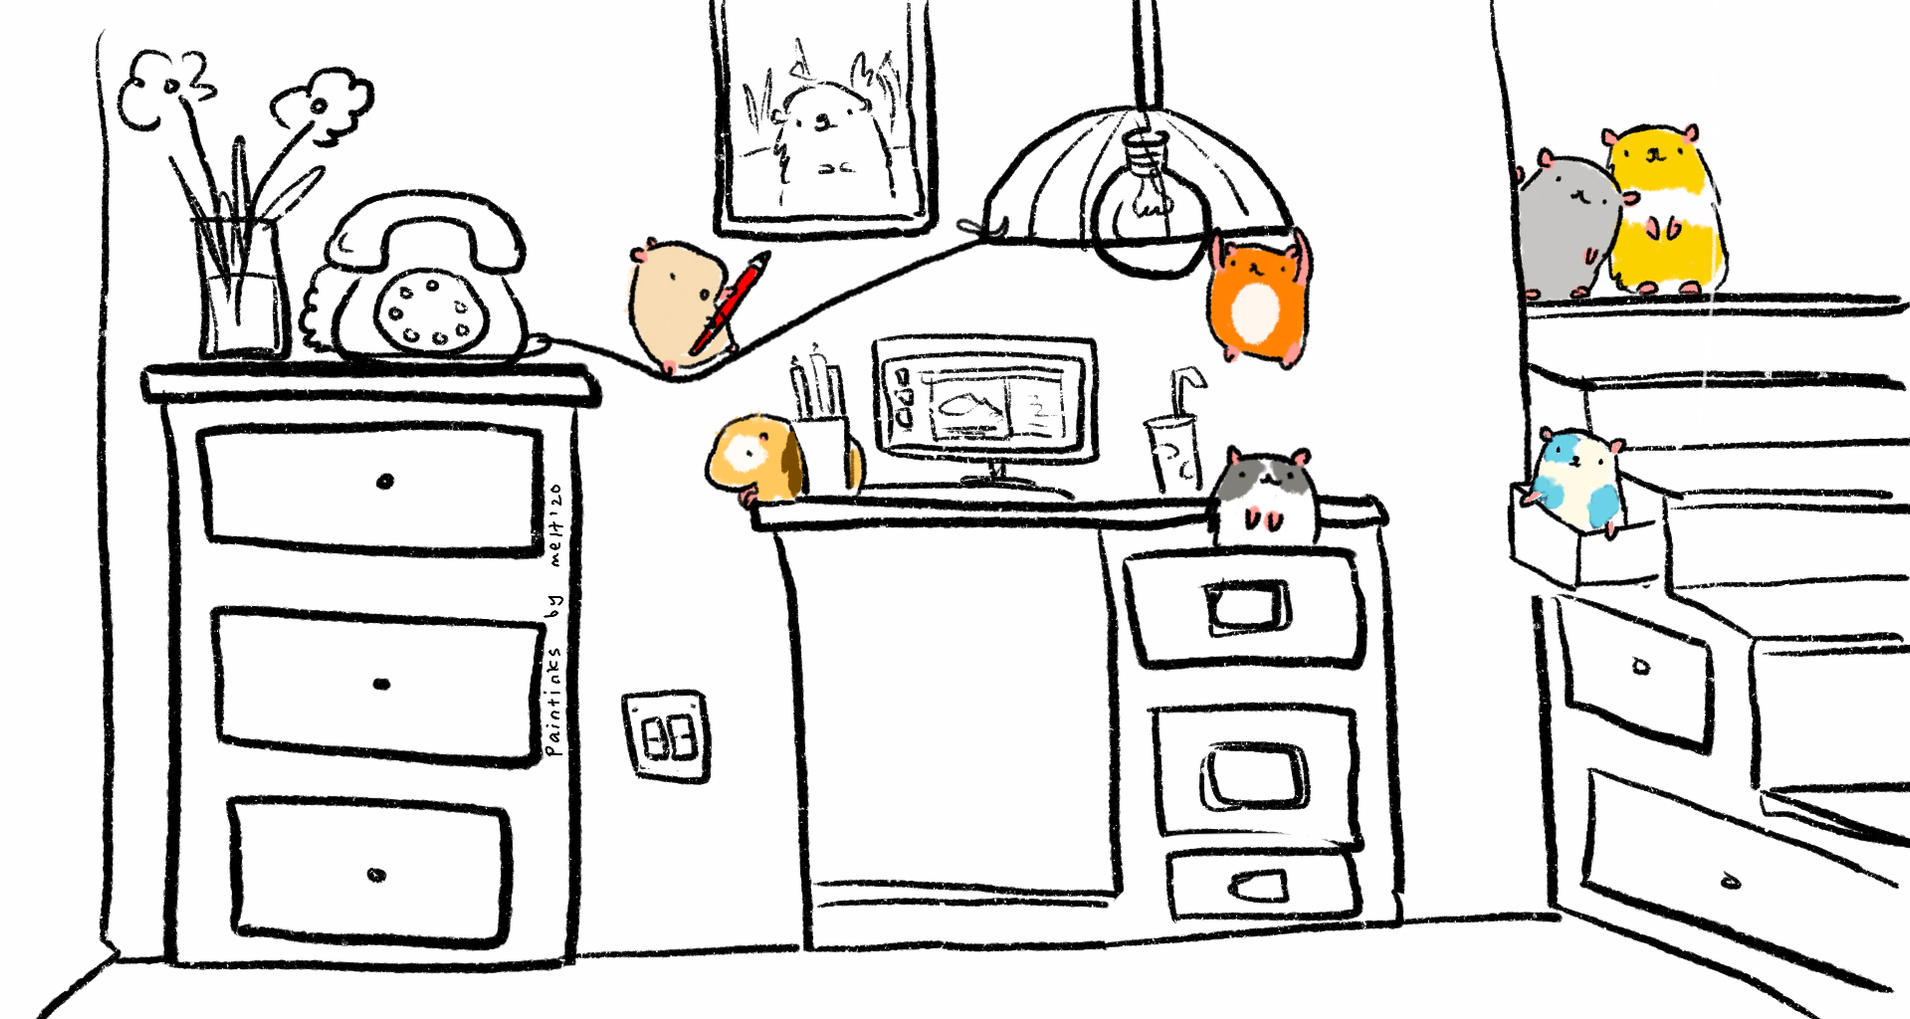 Hamsters take over!